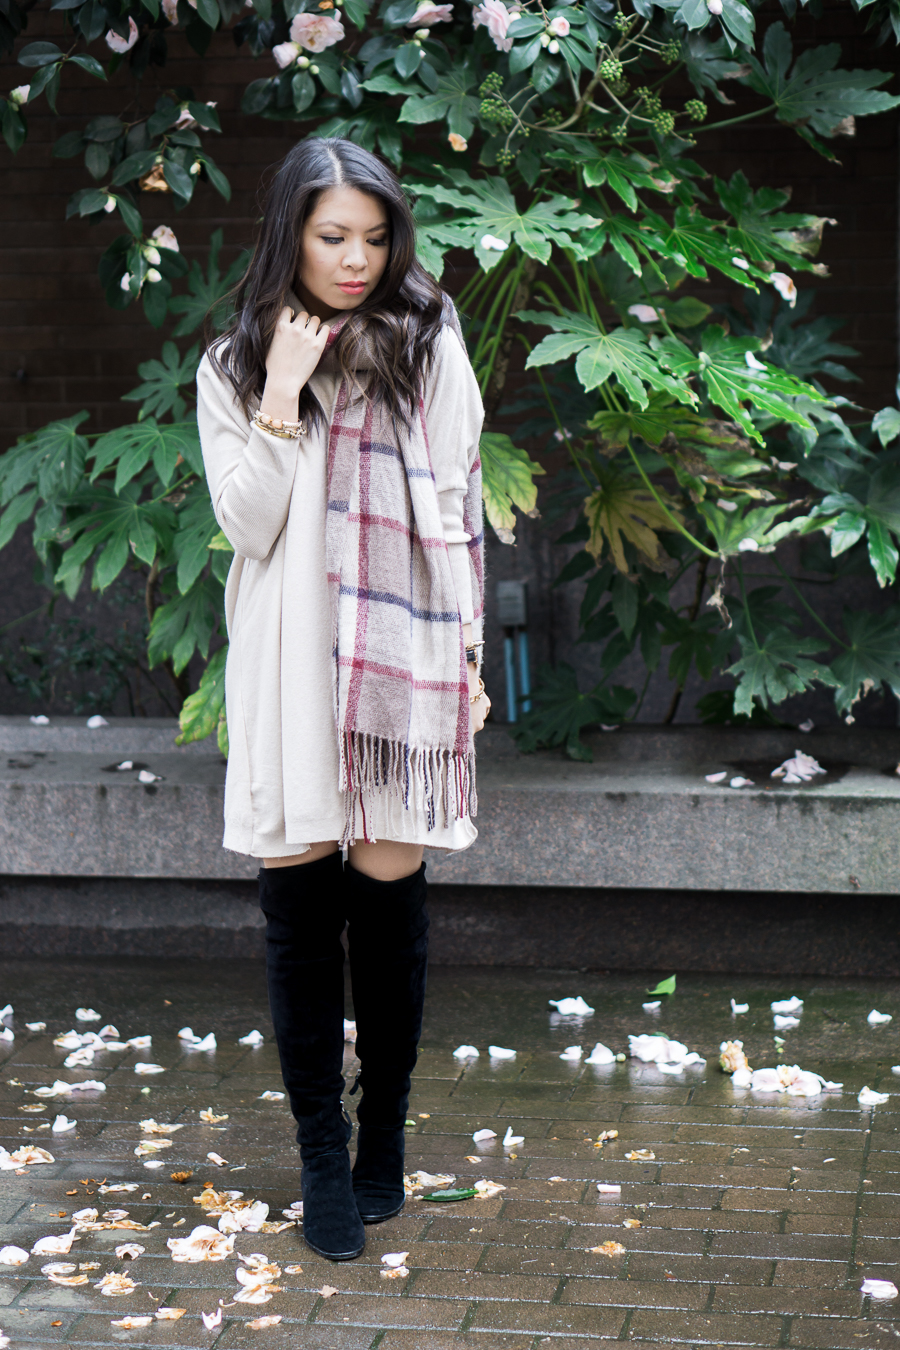 sweater dress over the knee boots outfit, asos tunic dress